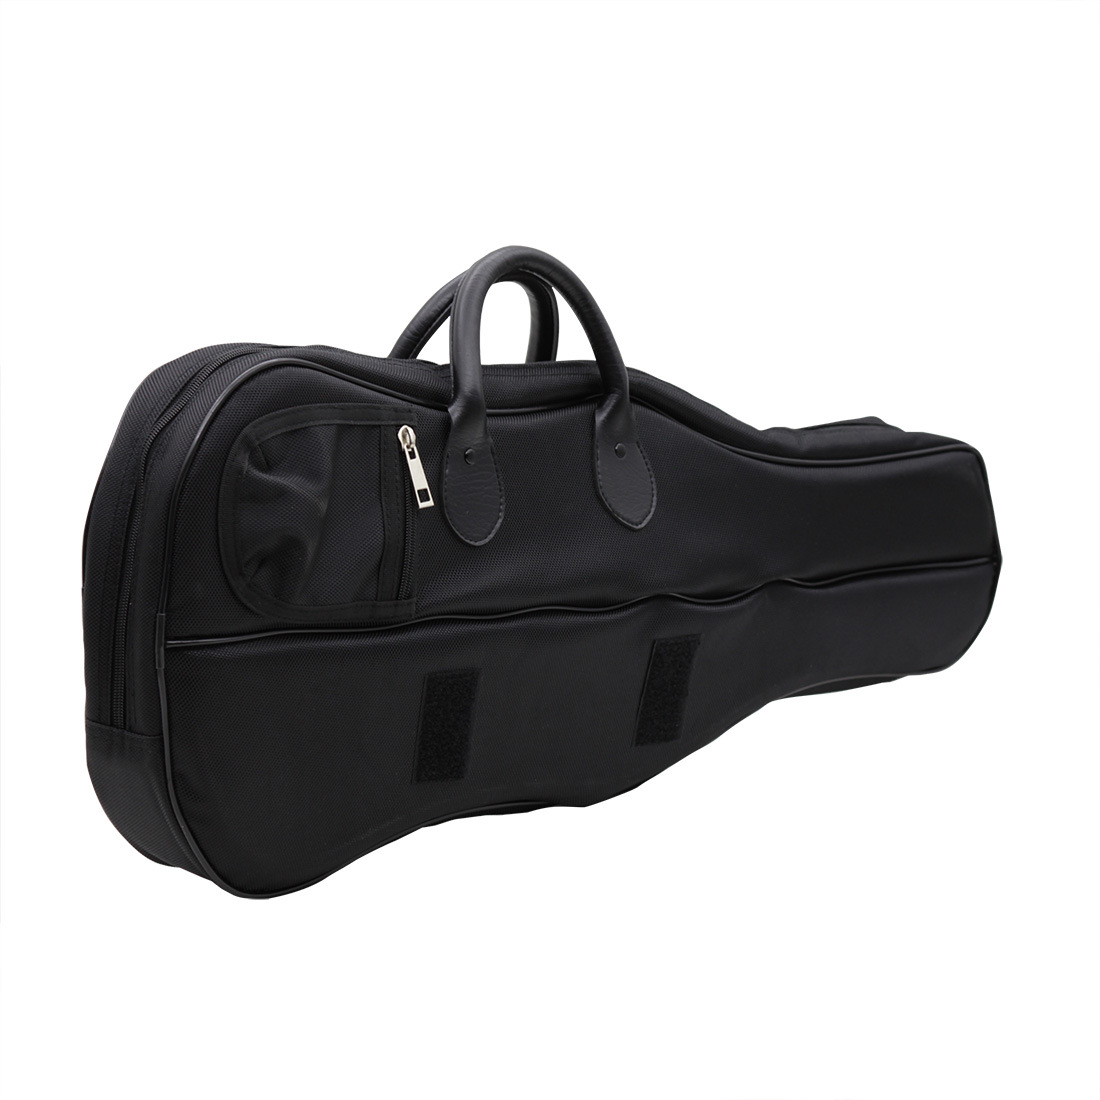 SEWS-IRIN Violin Hand Bag Soft Case Storage Box Waterproof Oxford 4/4 Violin Protection Accessory more colors violin soft case 4 4 a make violino velvet box backpack waterproof canvas safety light protection gig fiddle